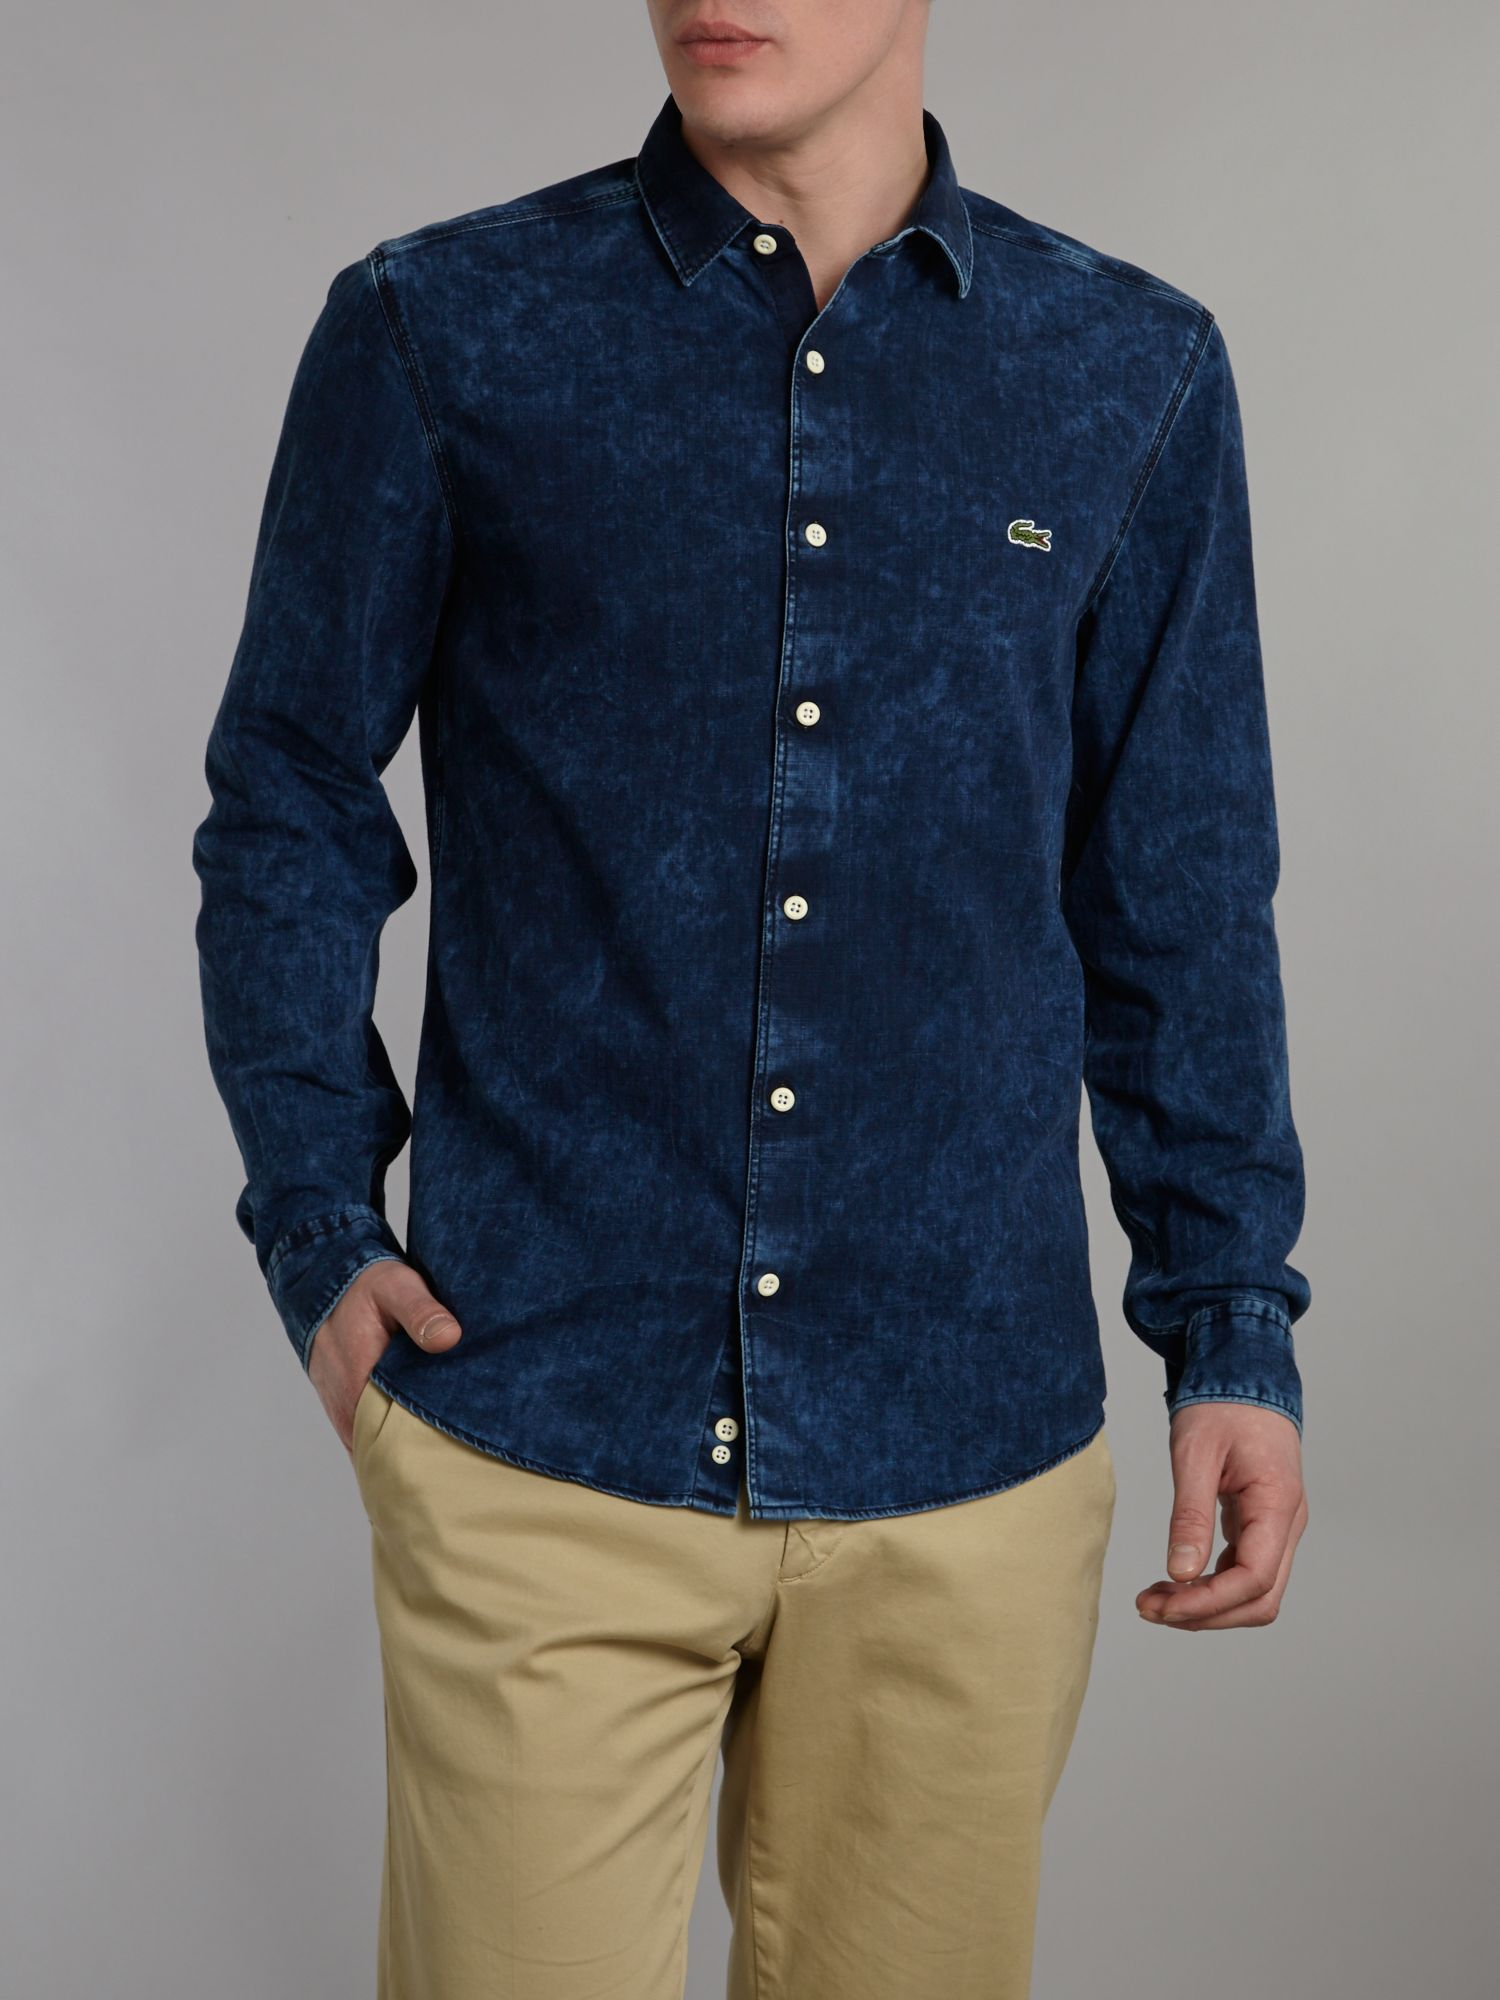 Long sleeved denim shirt